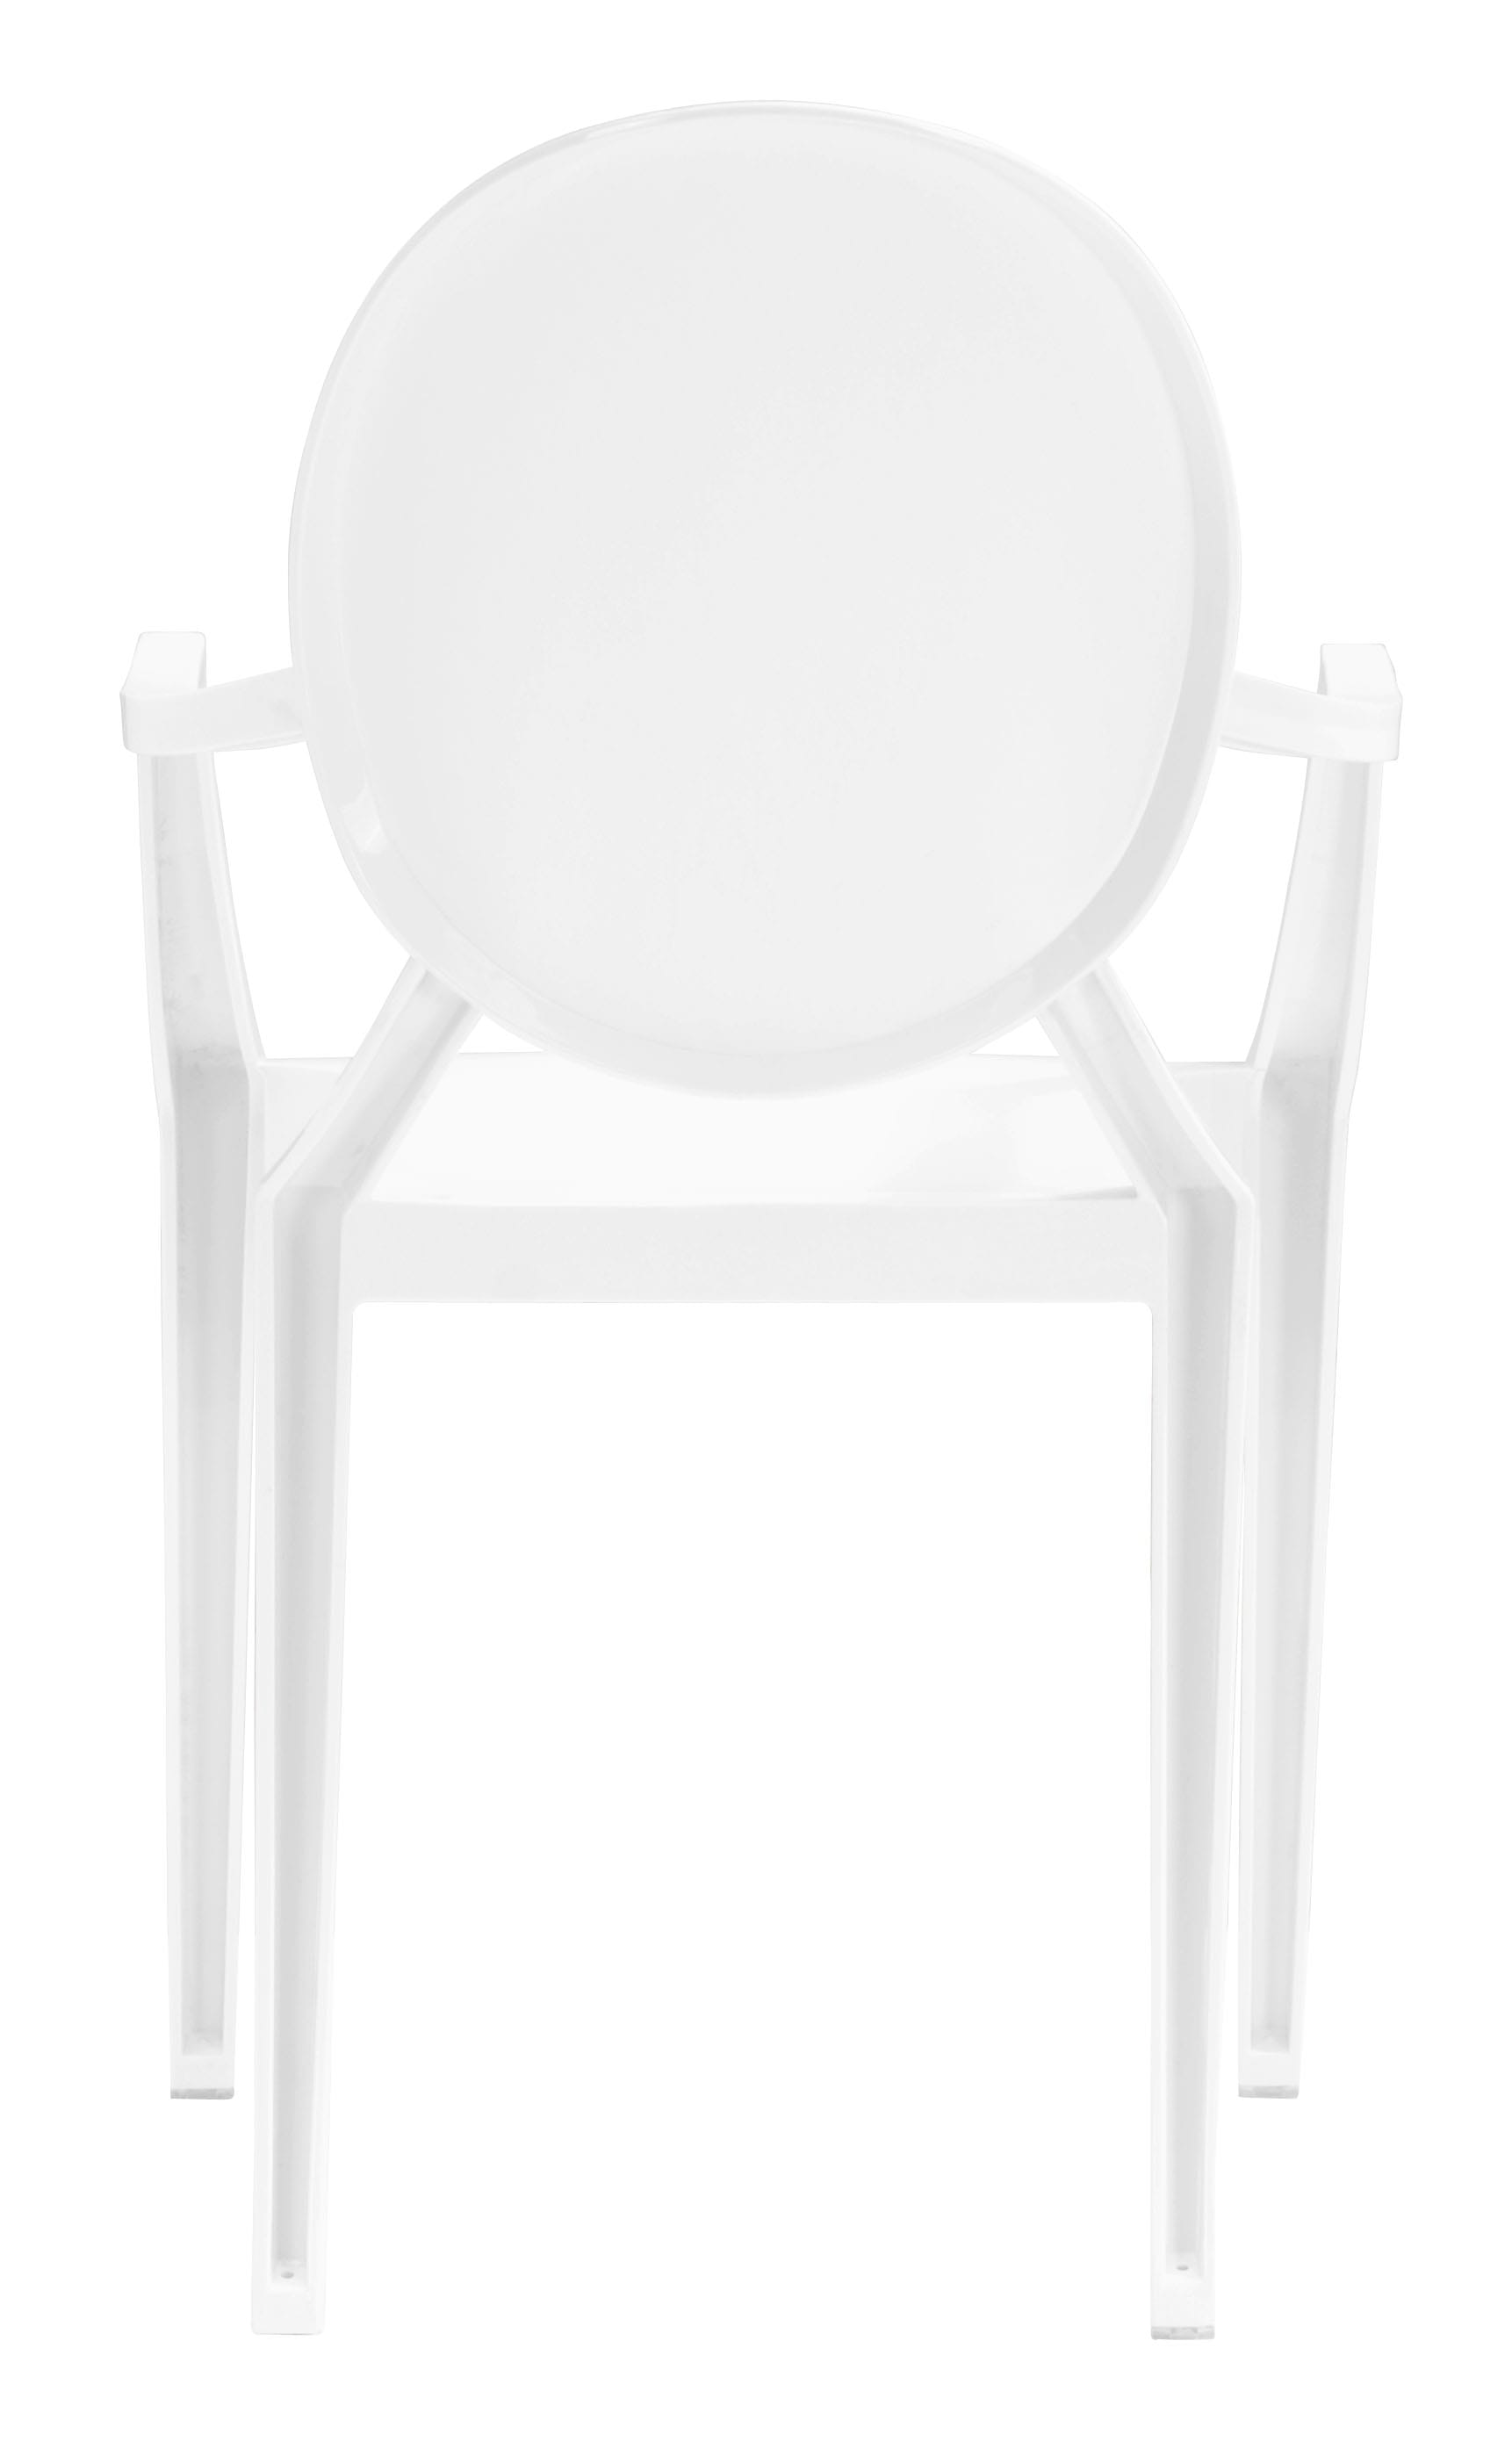 Anime Dining Chair White Set of 4 by Zuo Modern